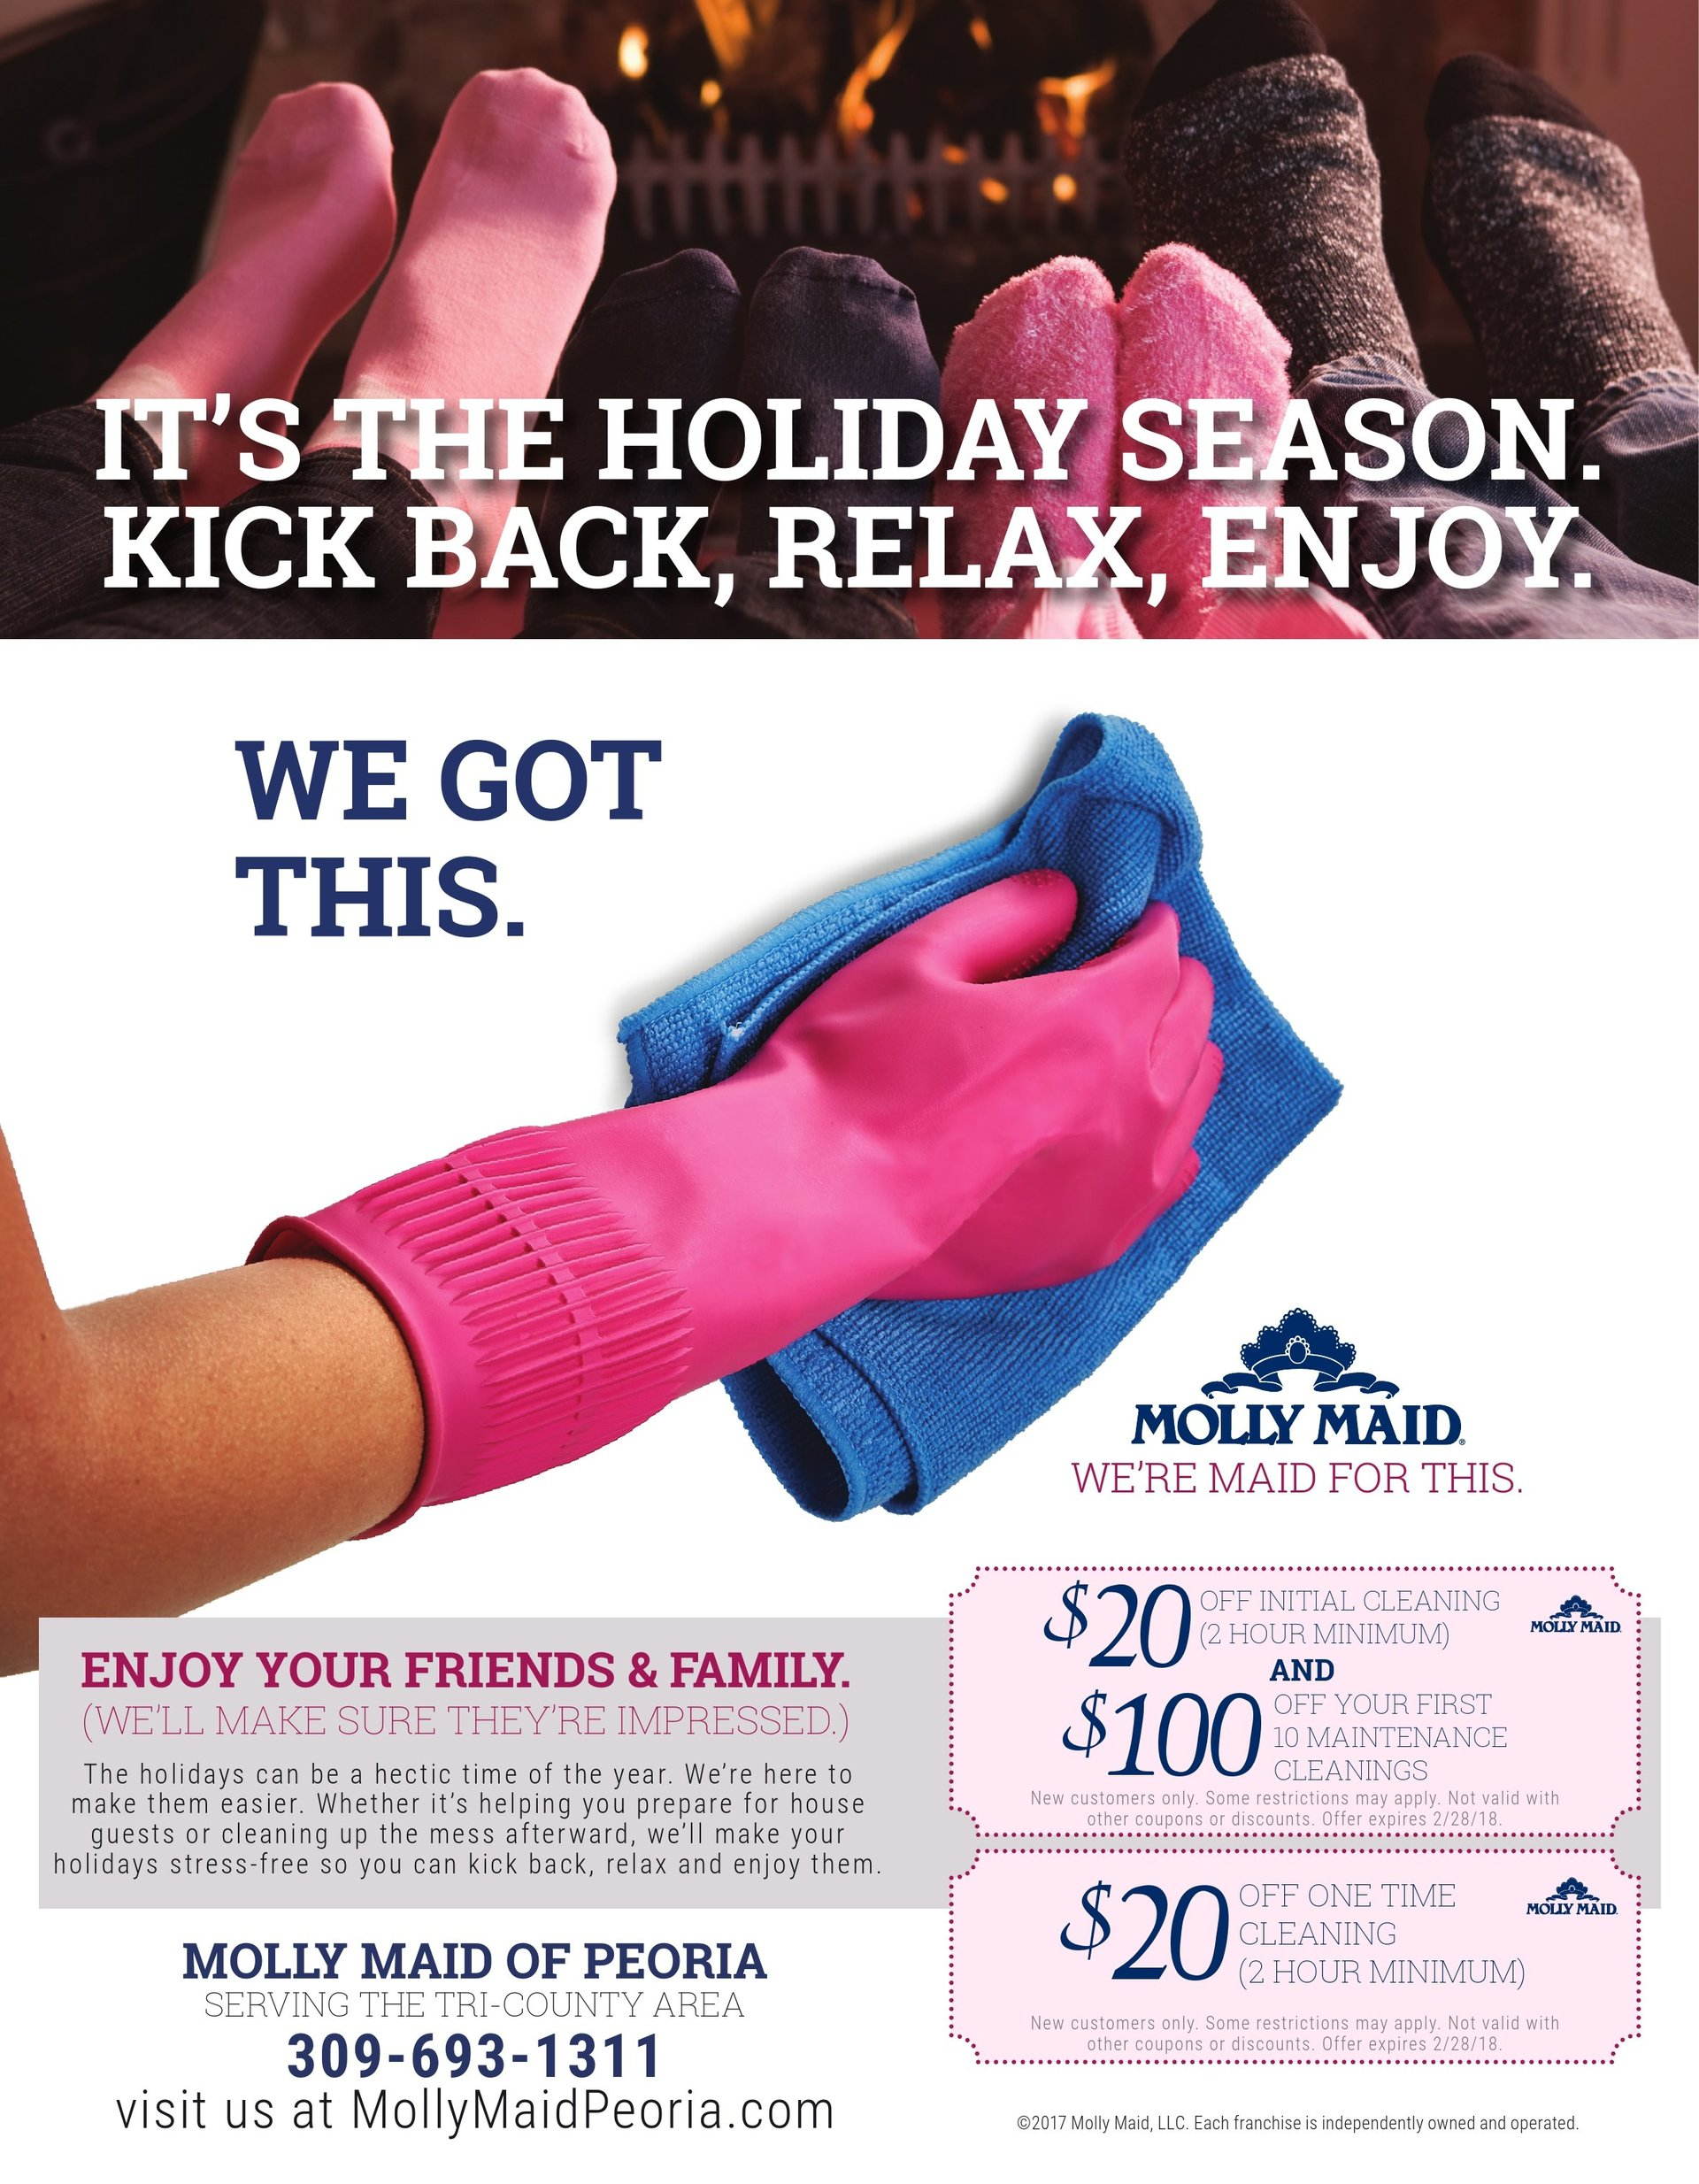 Molly Maid of Peoria house cleaning coupons Tri-County area Peoria, IL